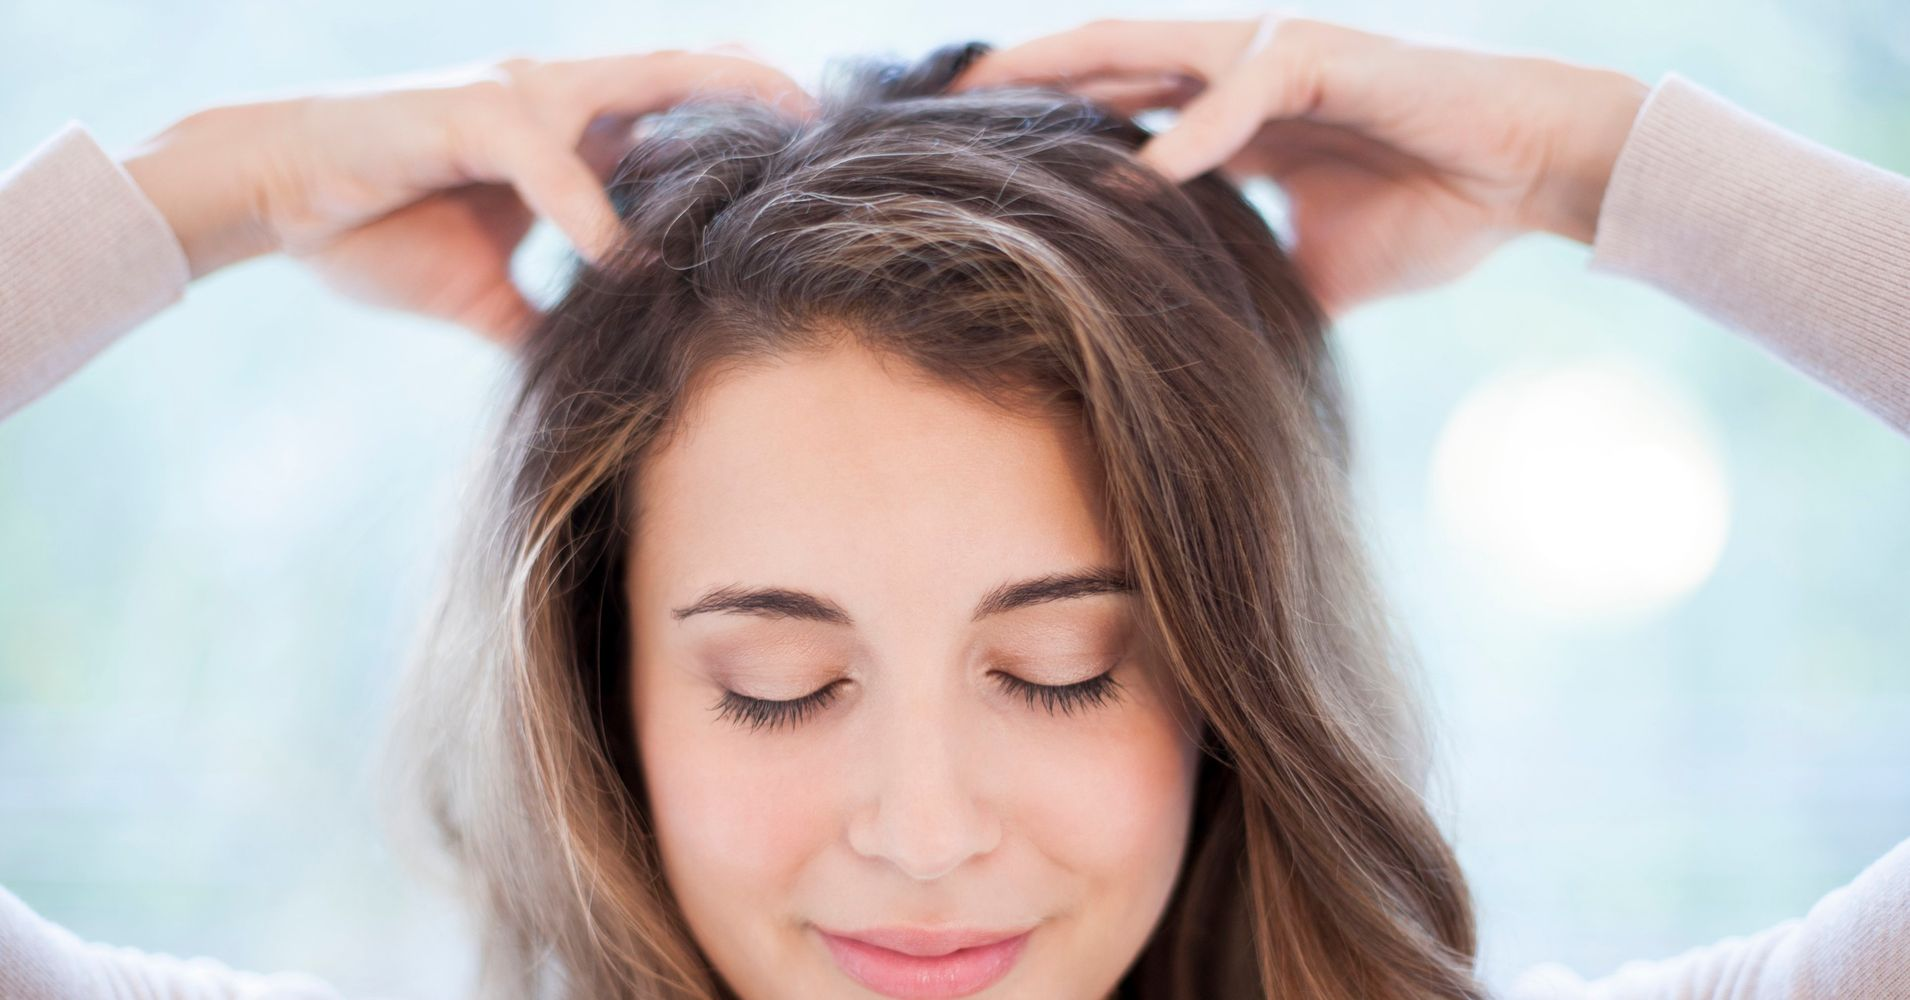 「head massage by yourself」の画像検索結果